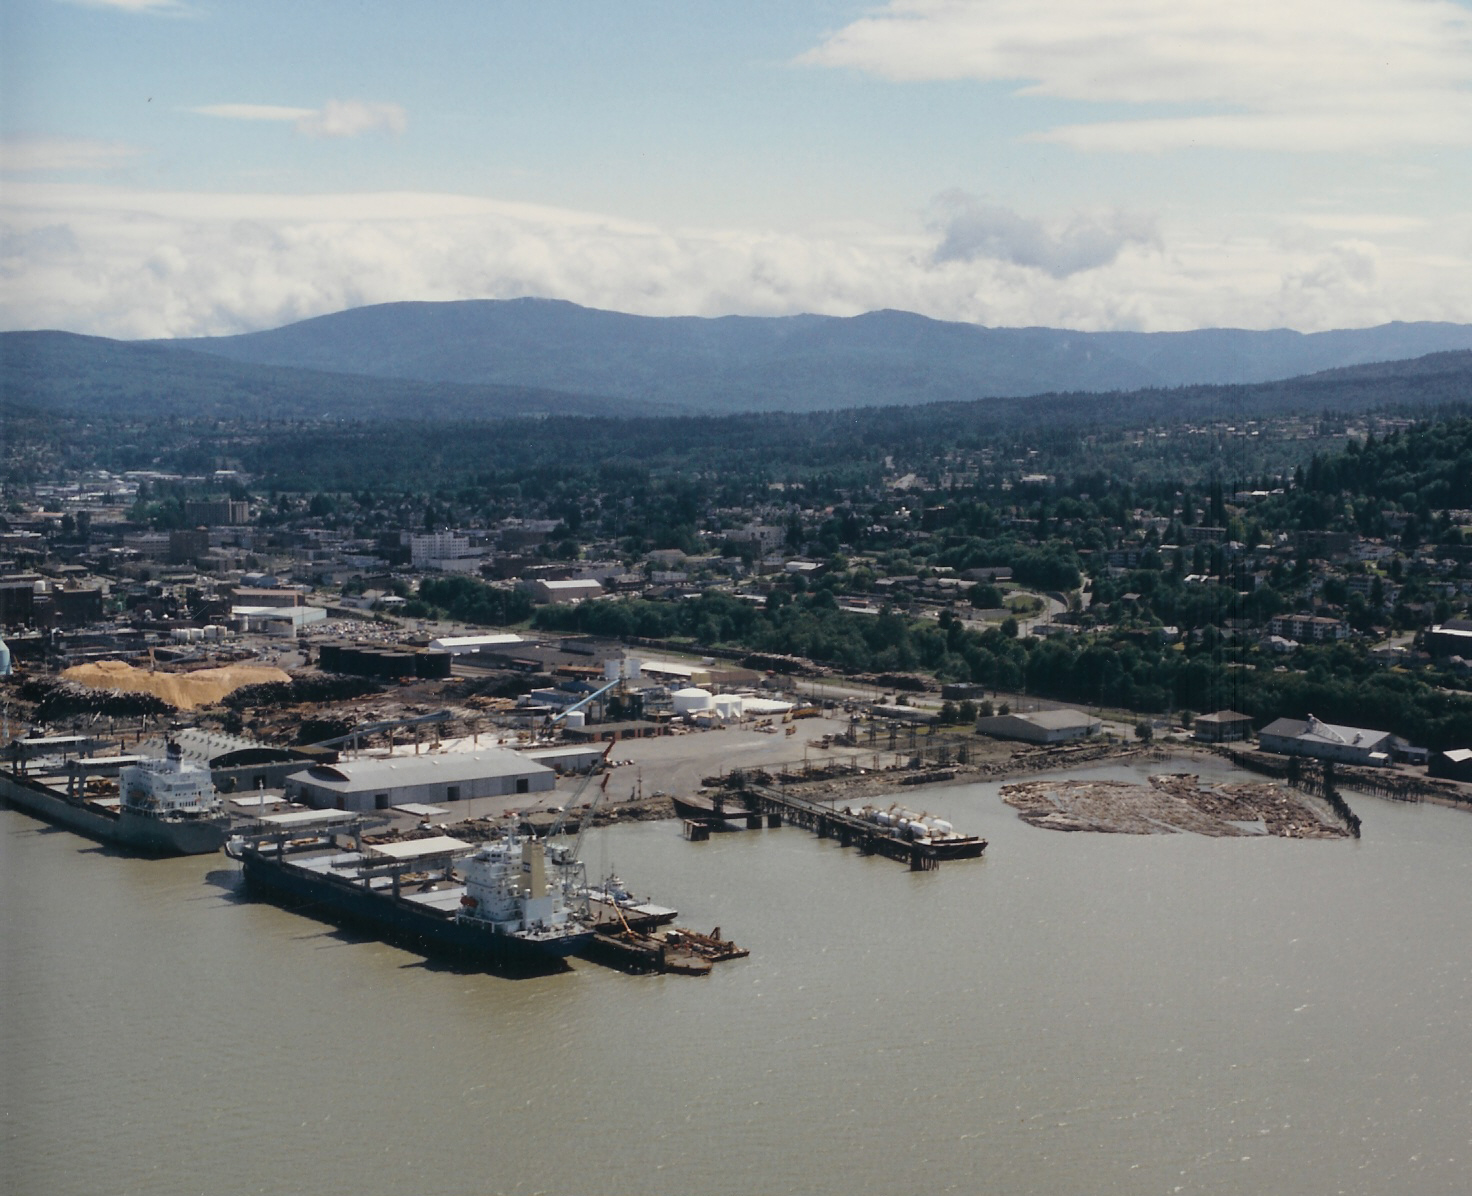 Aerial picture of cargo ships at the Bellingham Shipping Terminal